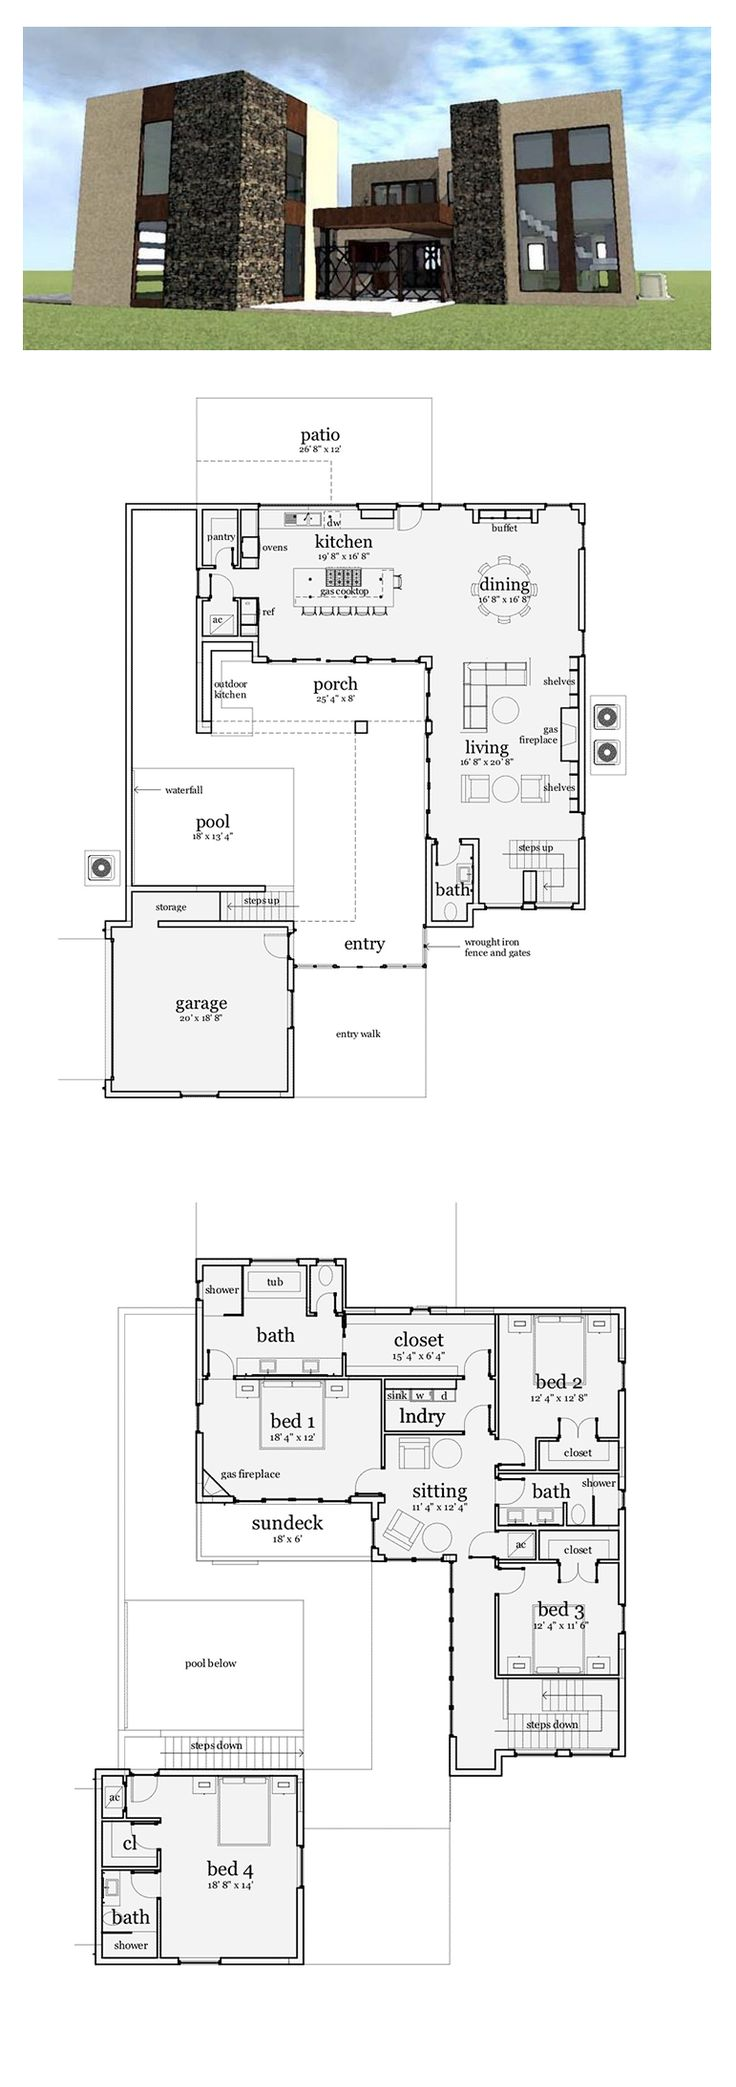 Modern House Plan 70803 | Total Living Area: 3100 sq. ft., 4 bedrooms & 3.5 bathrooms. #modernhouseplan #houseplan